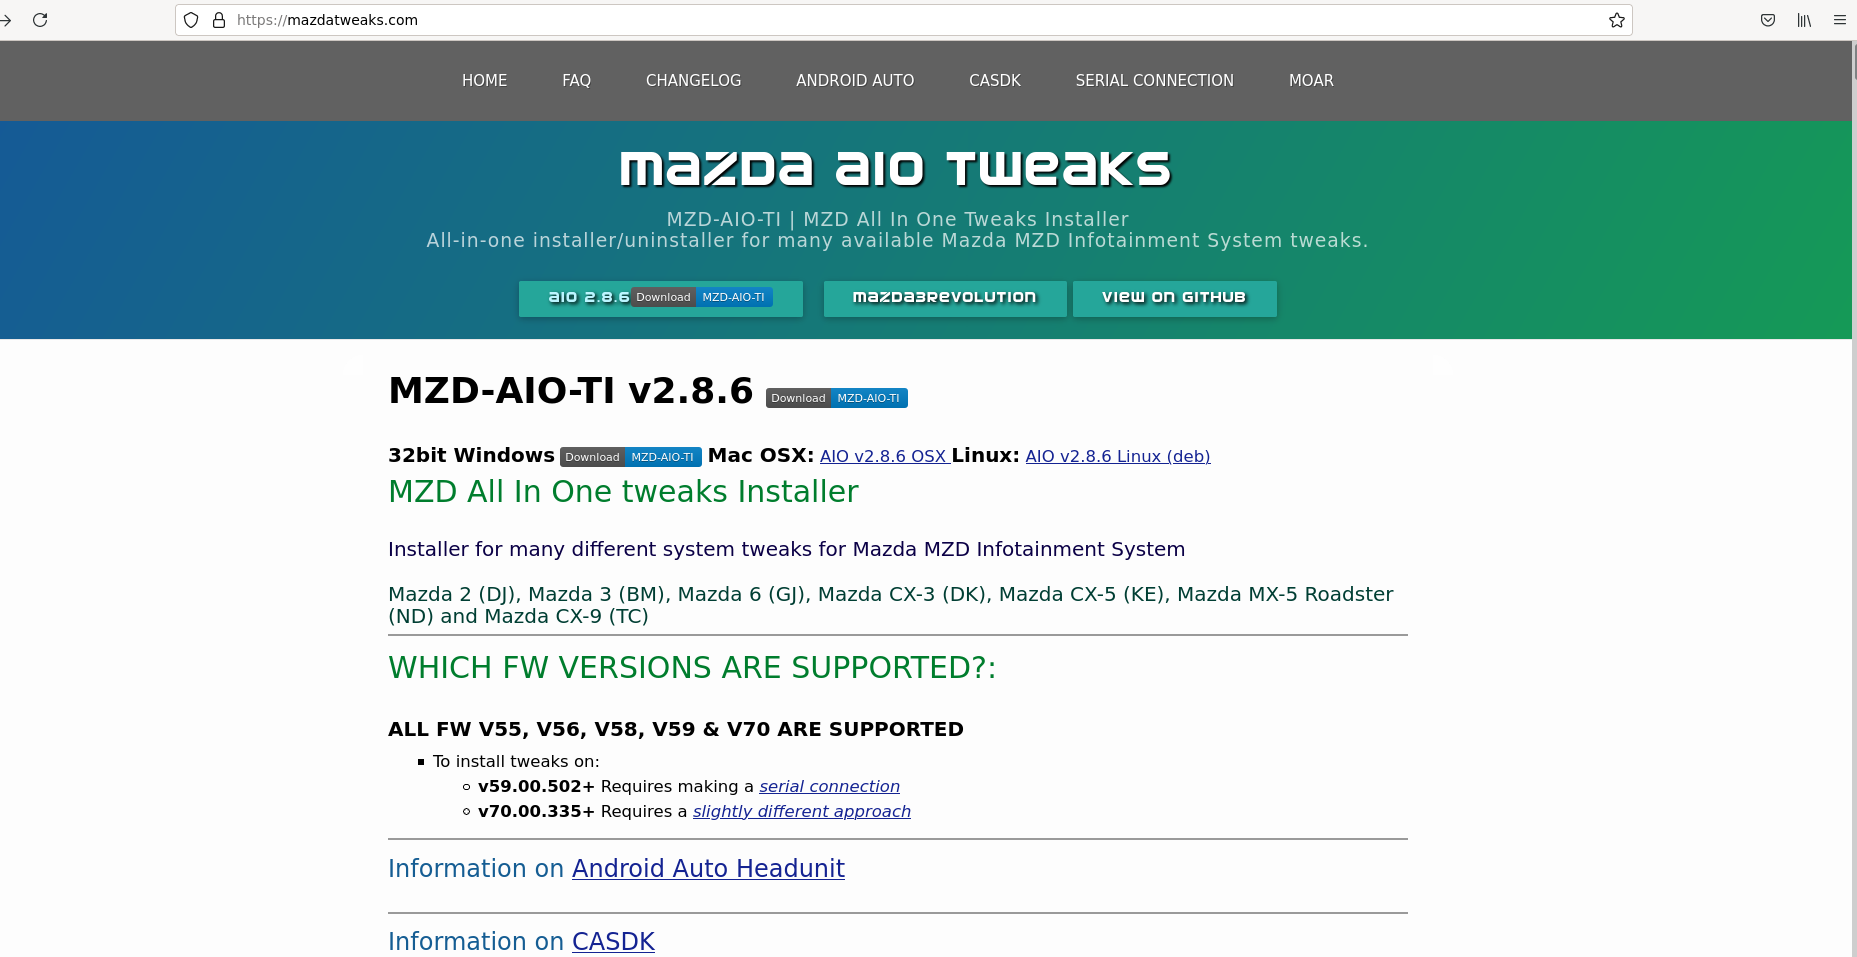 Landing page of the official Mazdatweaks AIO hack website